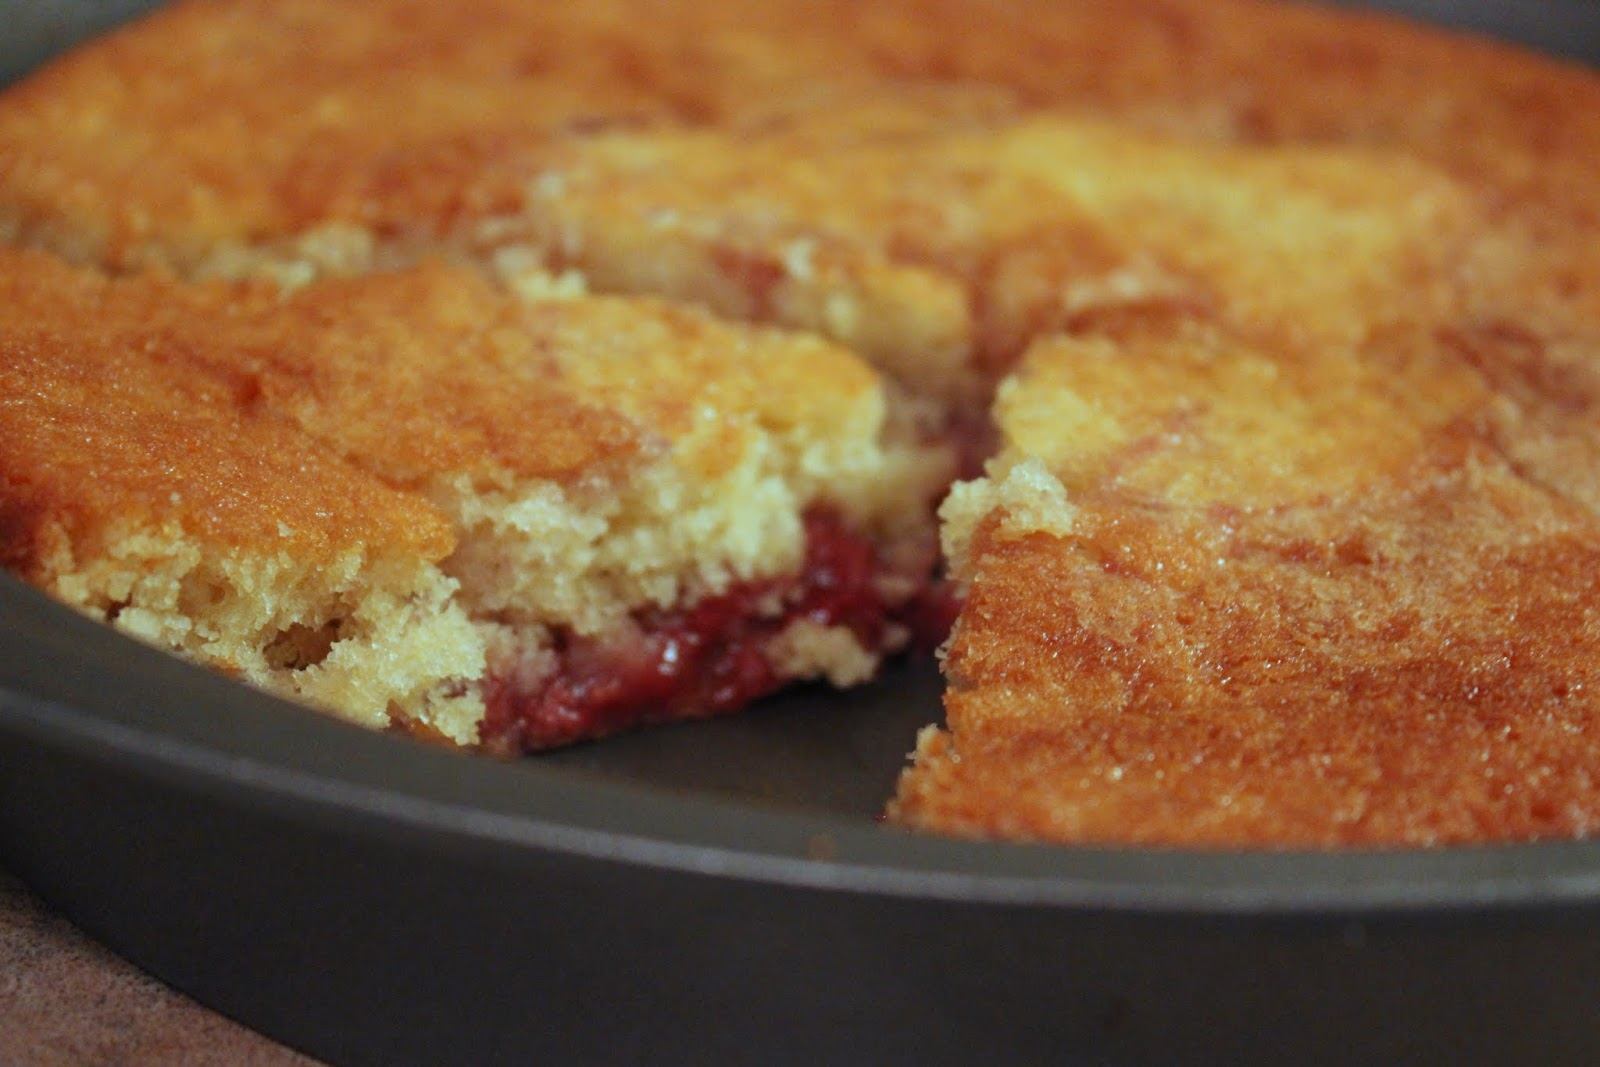 ... in the Kitchen Sink: Roasted Balsamic Strawberry Buttermilk Cake